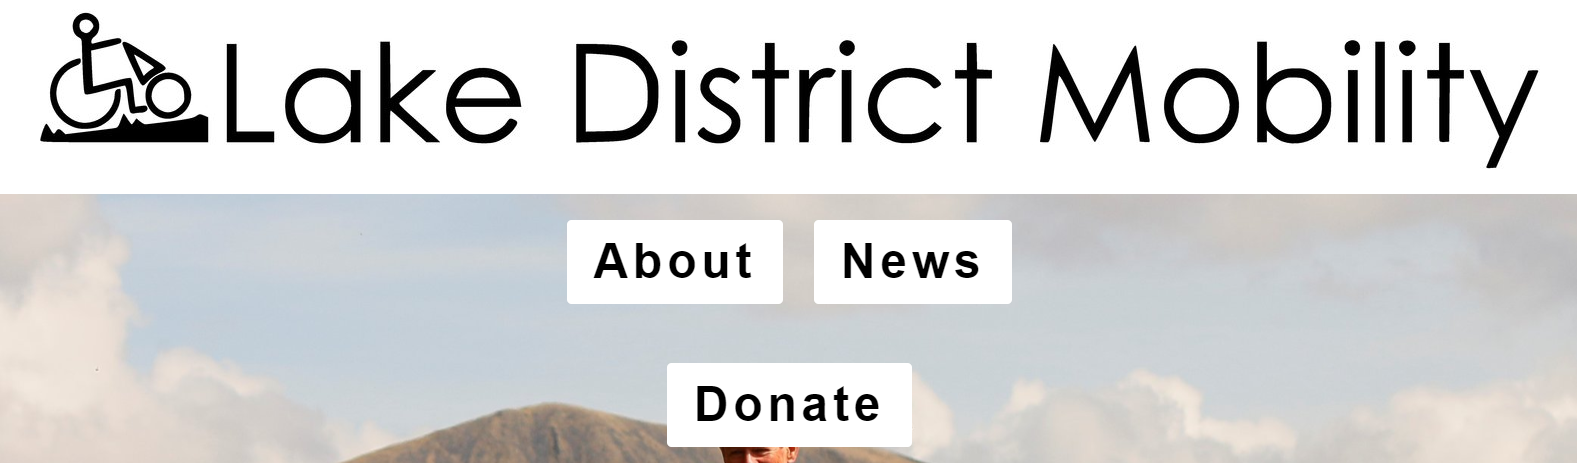 LDM Donate Button with Banner.PNG